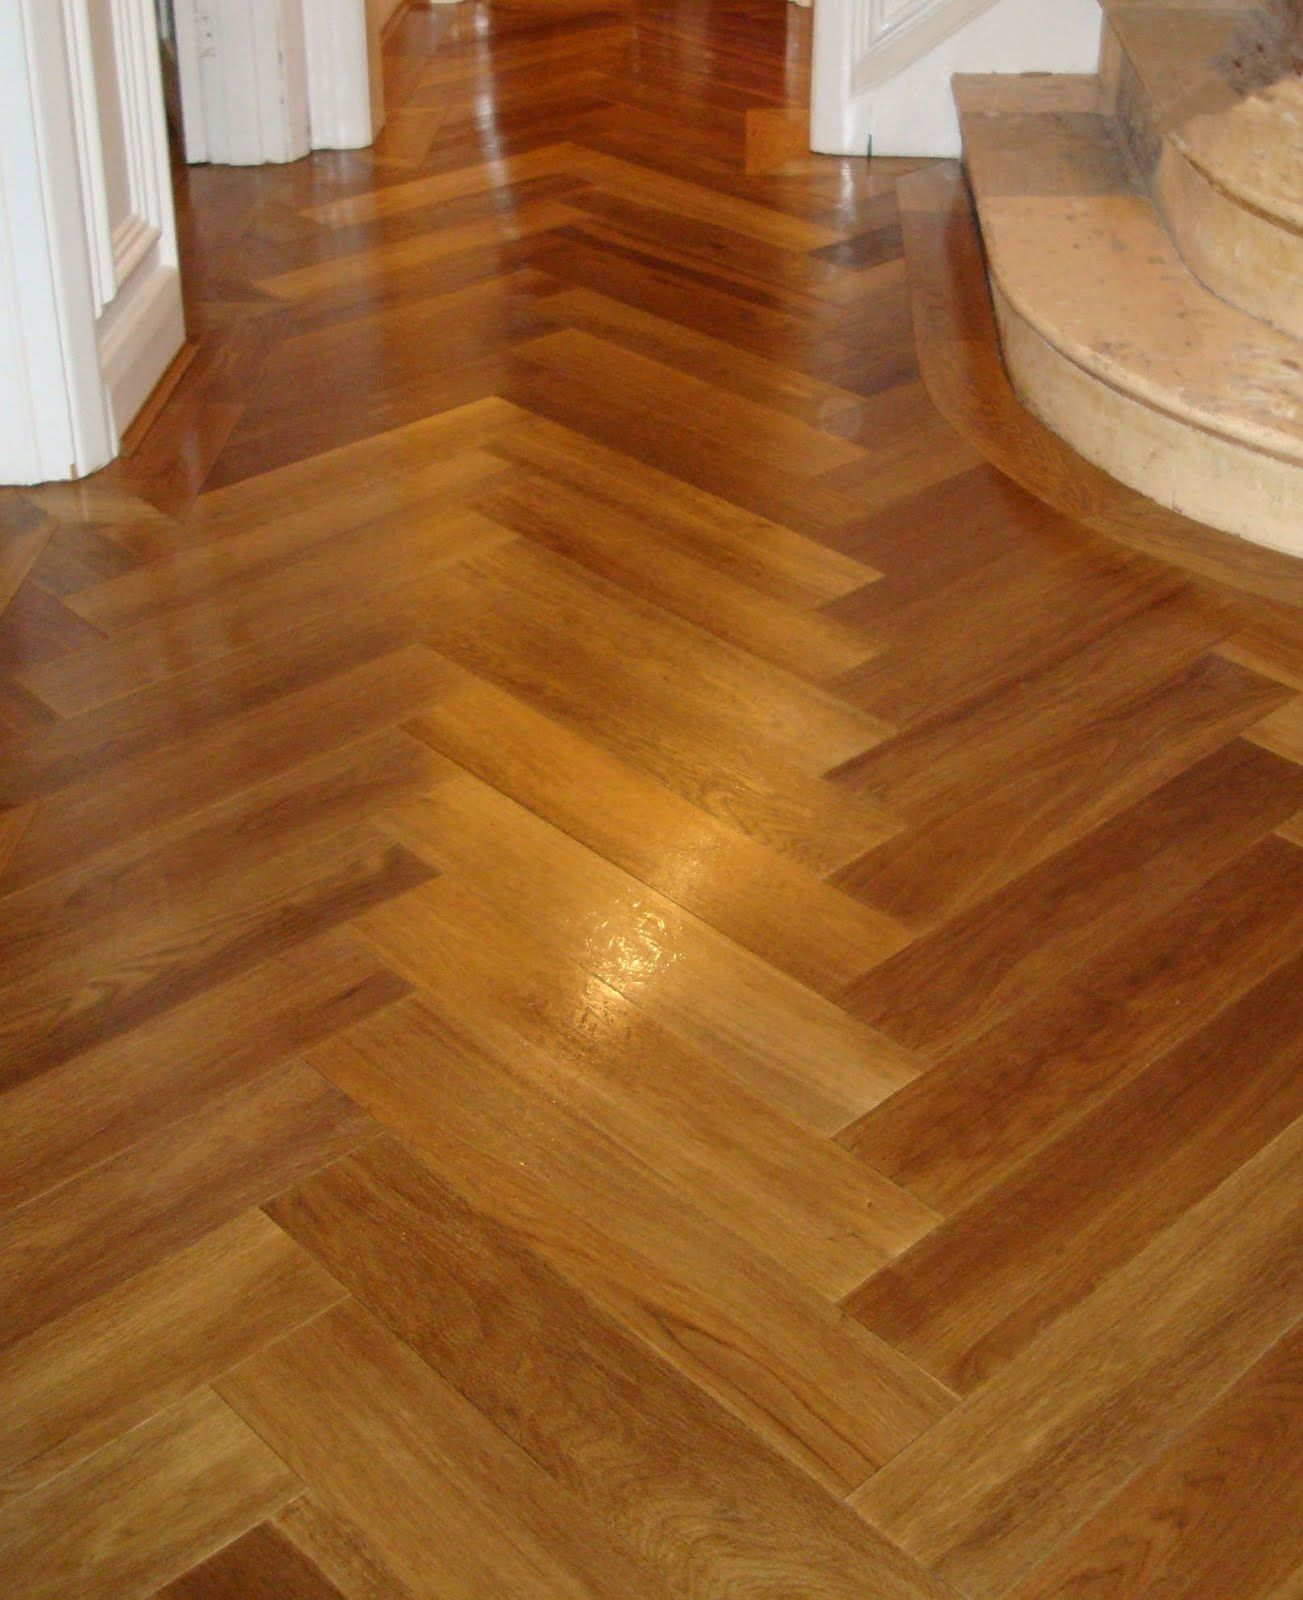 Merveilleux Wood Flooring Ideas | Wood Floor,Wood Floor Design,Wood Floor Design Ideas